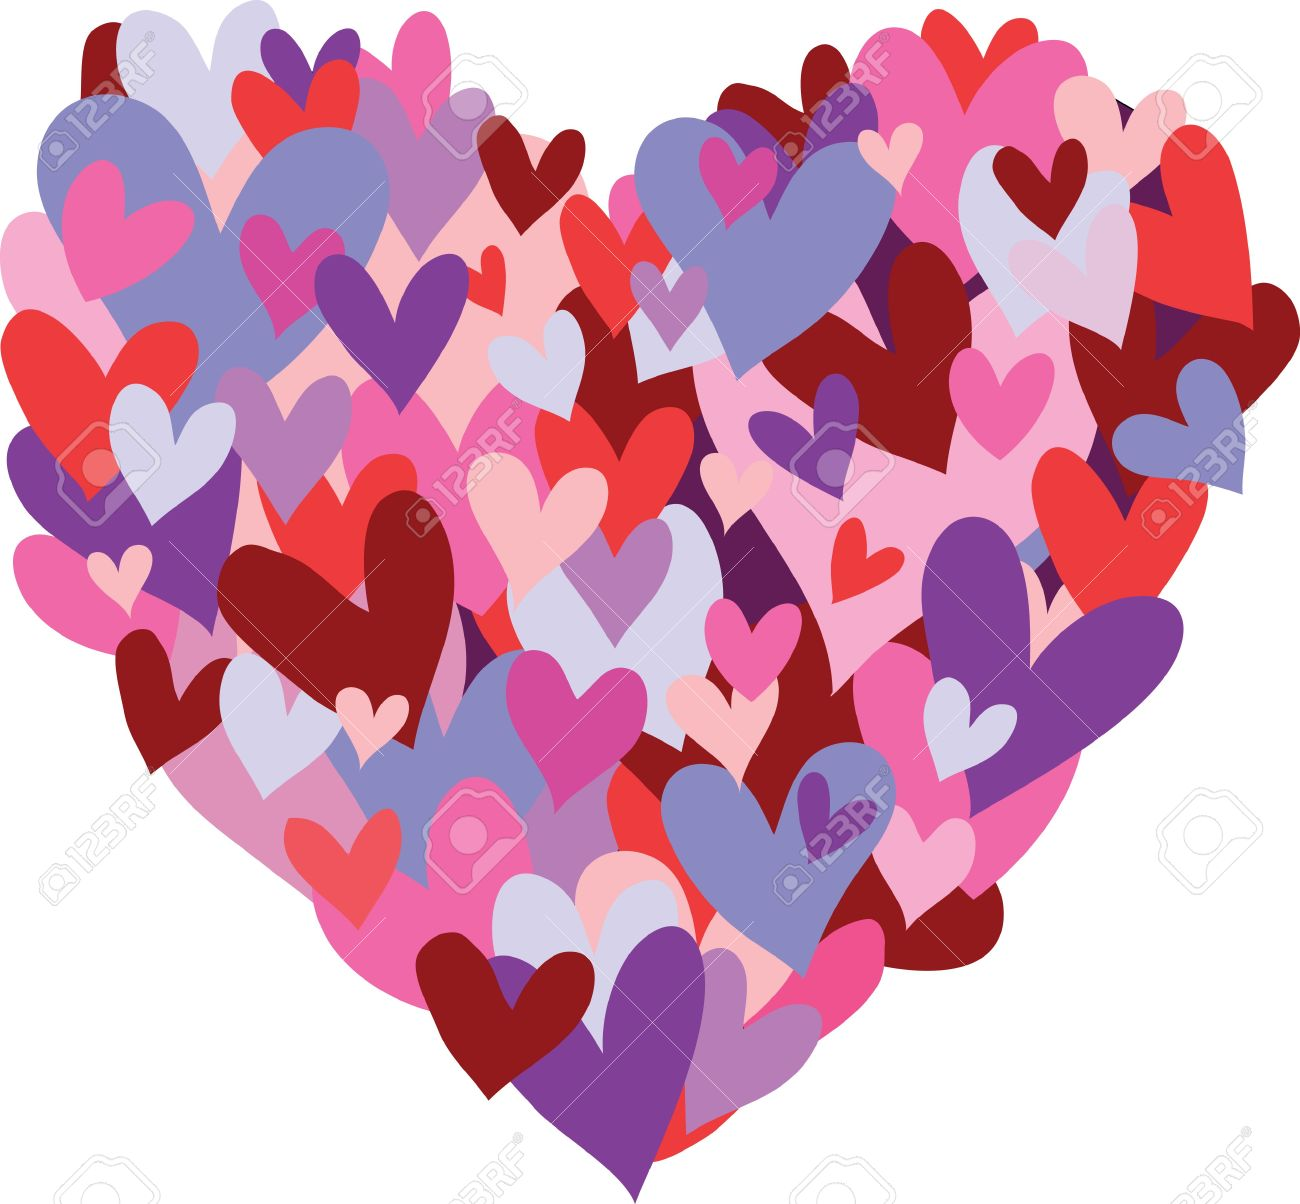 A heart symbol made up of smaller hearts in the colors red purple a heart symbol made up of smaller hearts in the colors red purple pink biocorpaavc